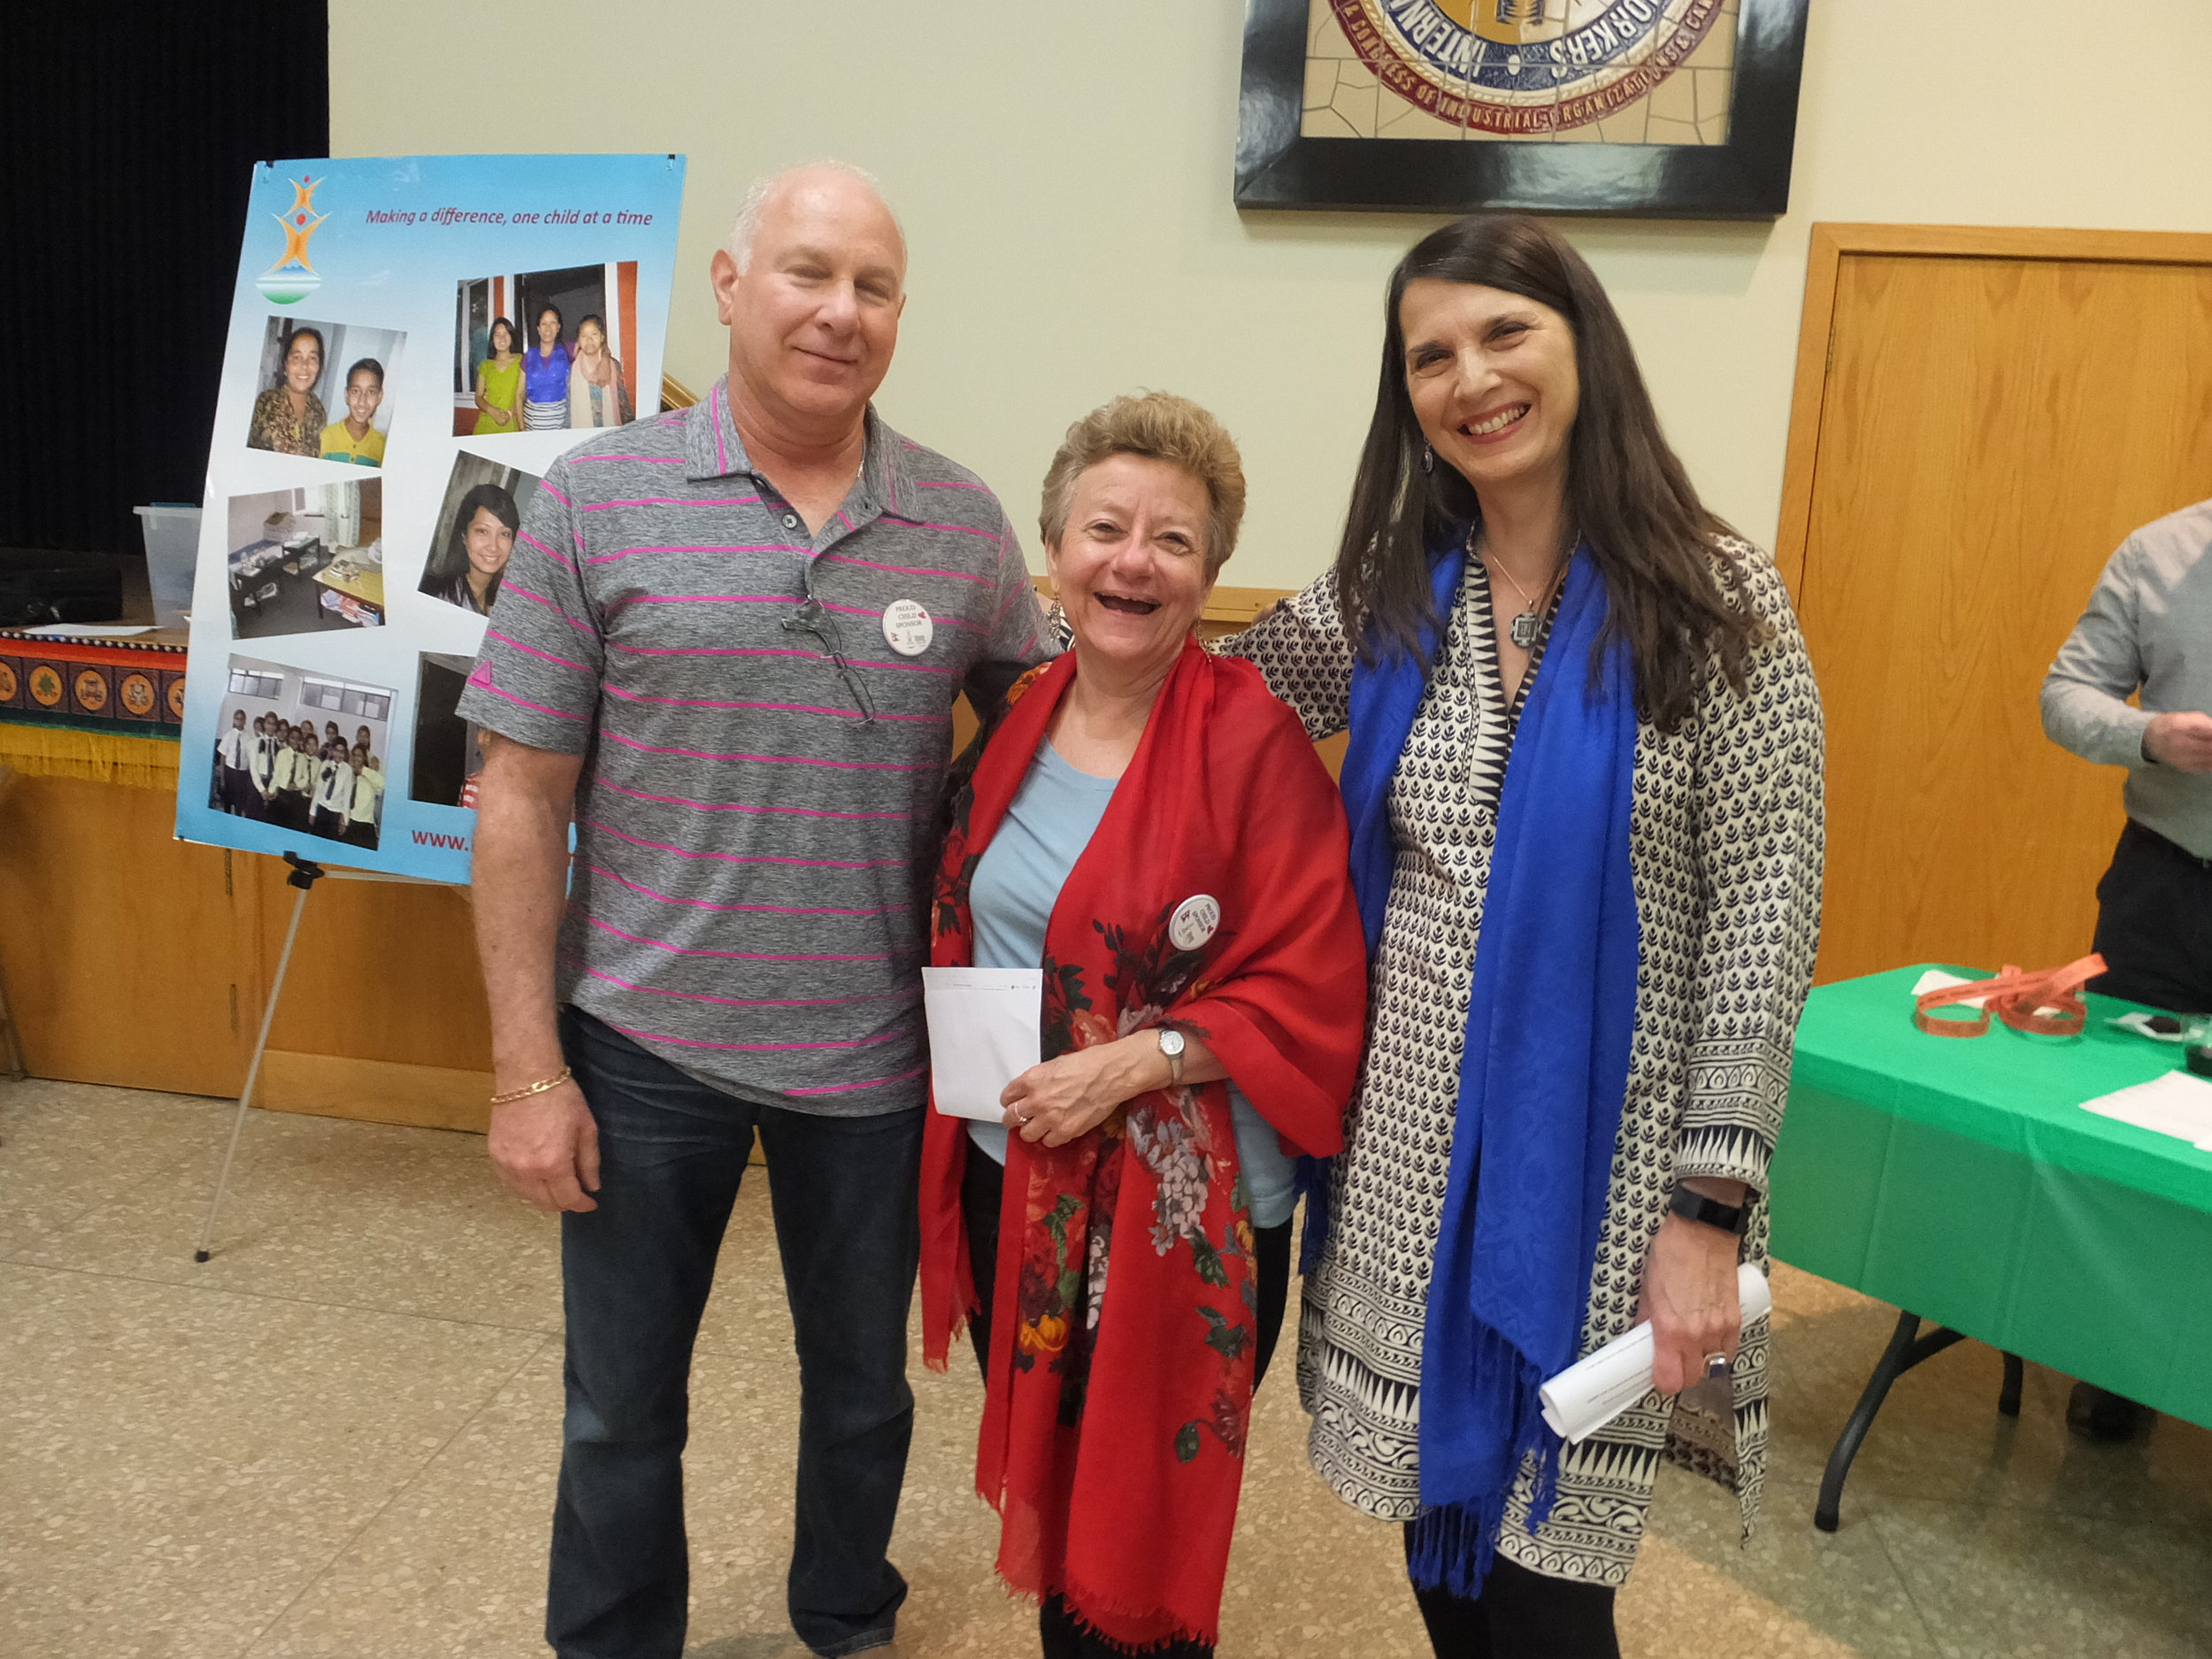 Board members Rick Hendin and Pam Hughes with Christine at Trivia Night in St. Louis, MO